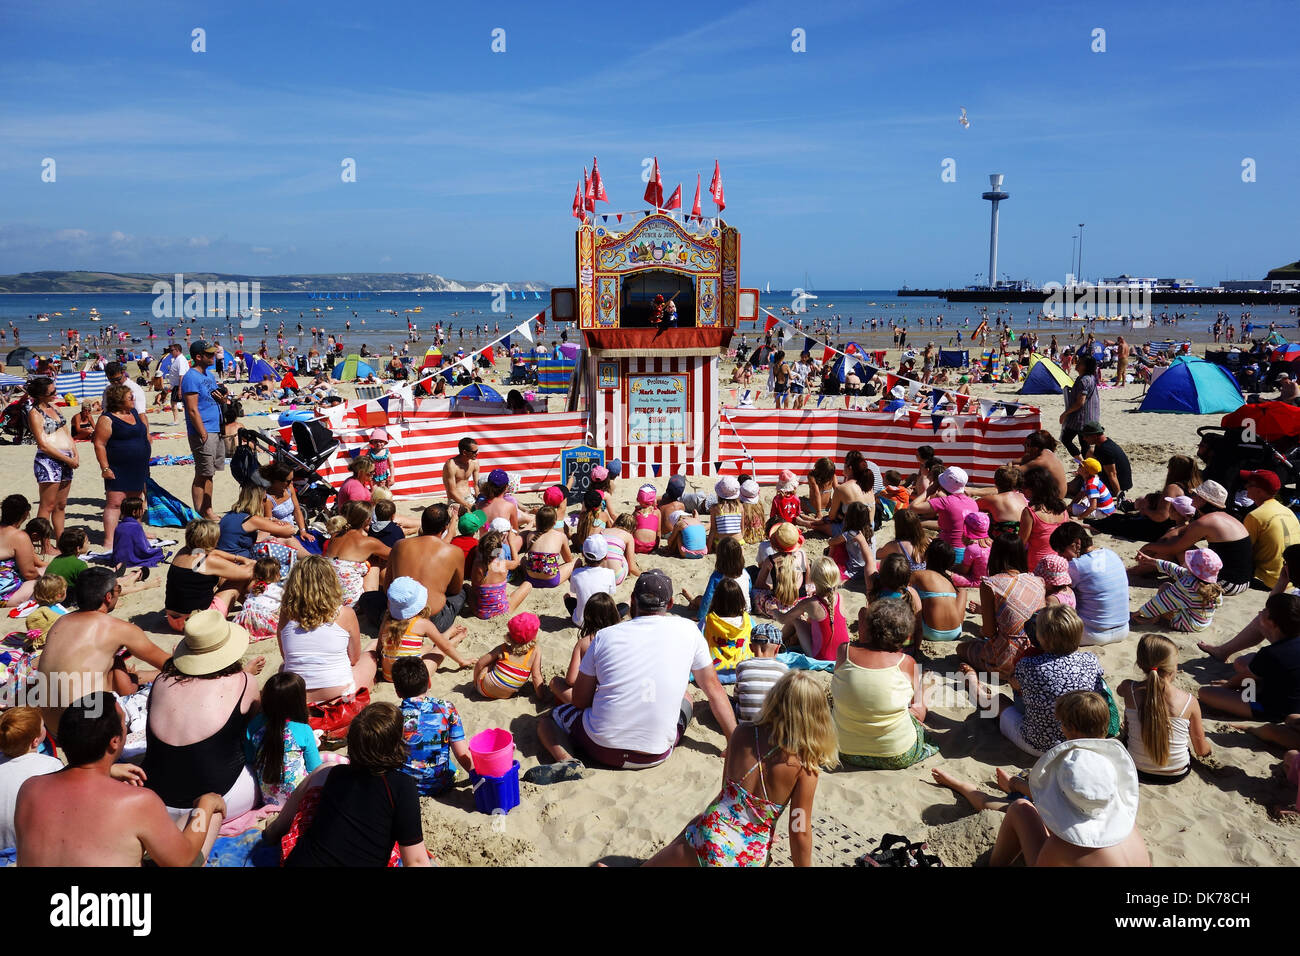 http://c8.alamy.com/comp/DK78CH/punch-and-judy-show-on-weymouth-beach-in-dorset-england-uk-traditional-DK78CH.jpg